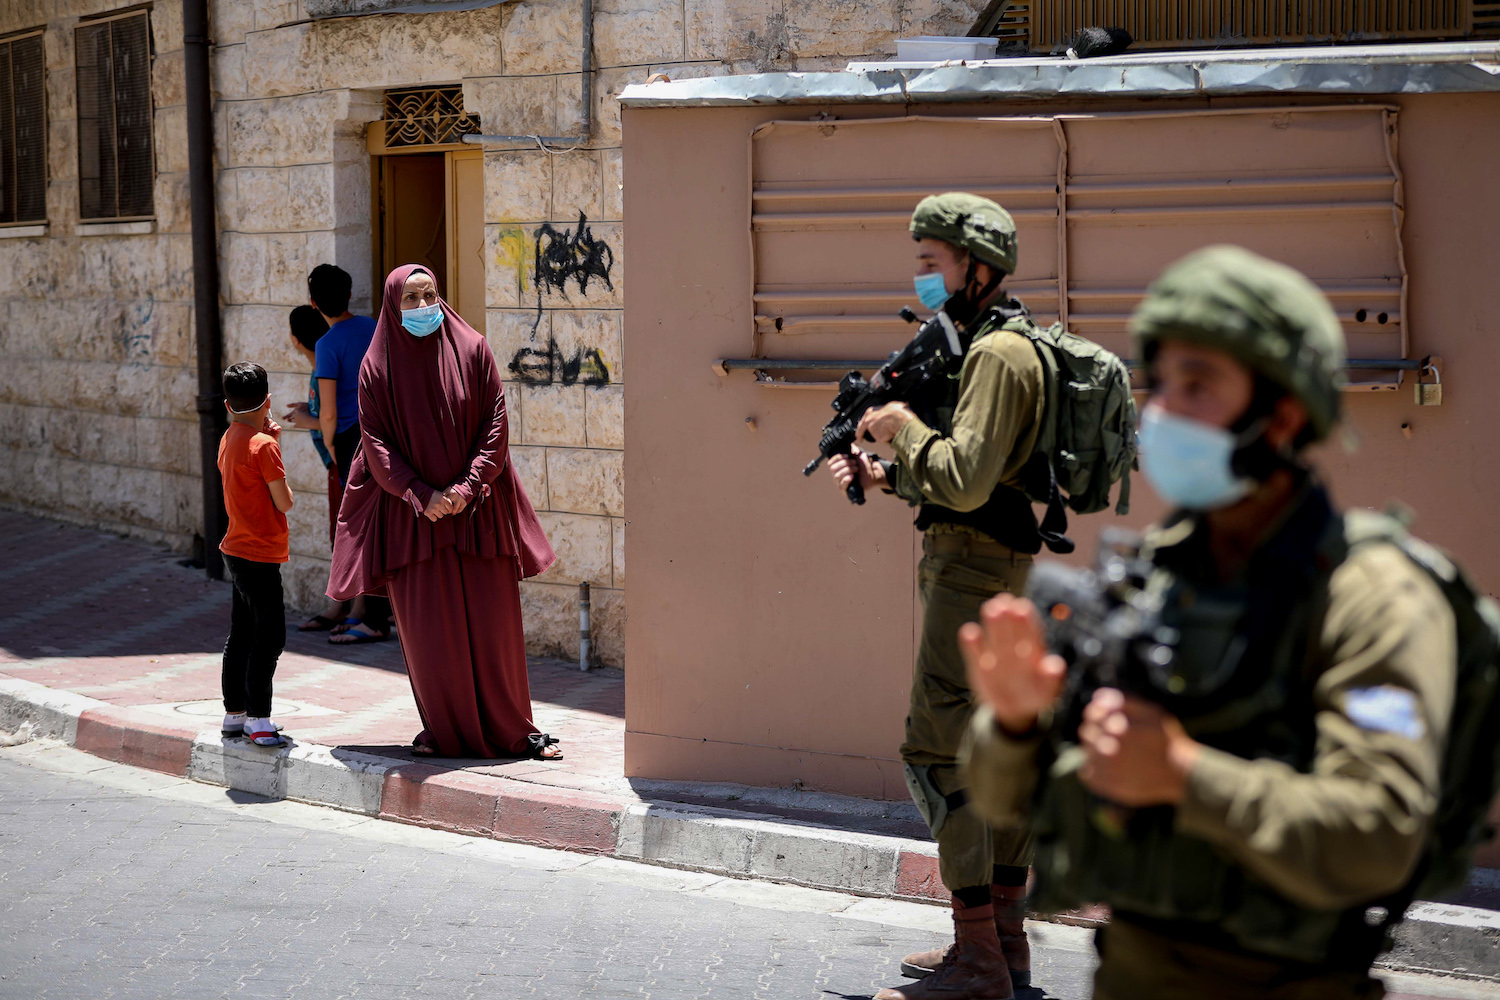 Israeli soldiers stand at checkpoint in the West Bank city of Hebron, June 25, 2020. (Wisam Hashlamoun/Flash90)